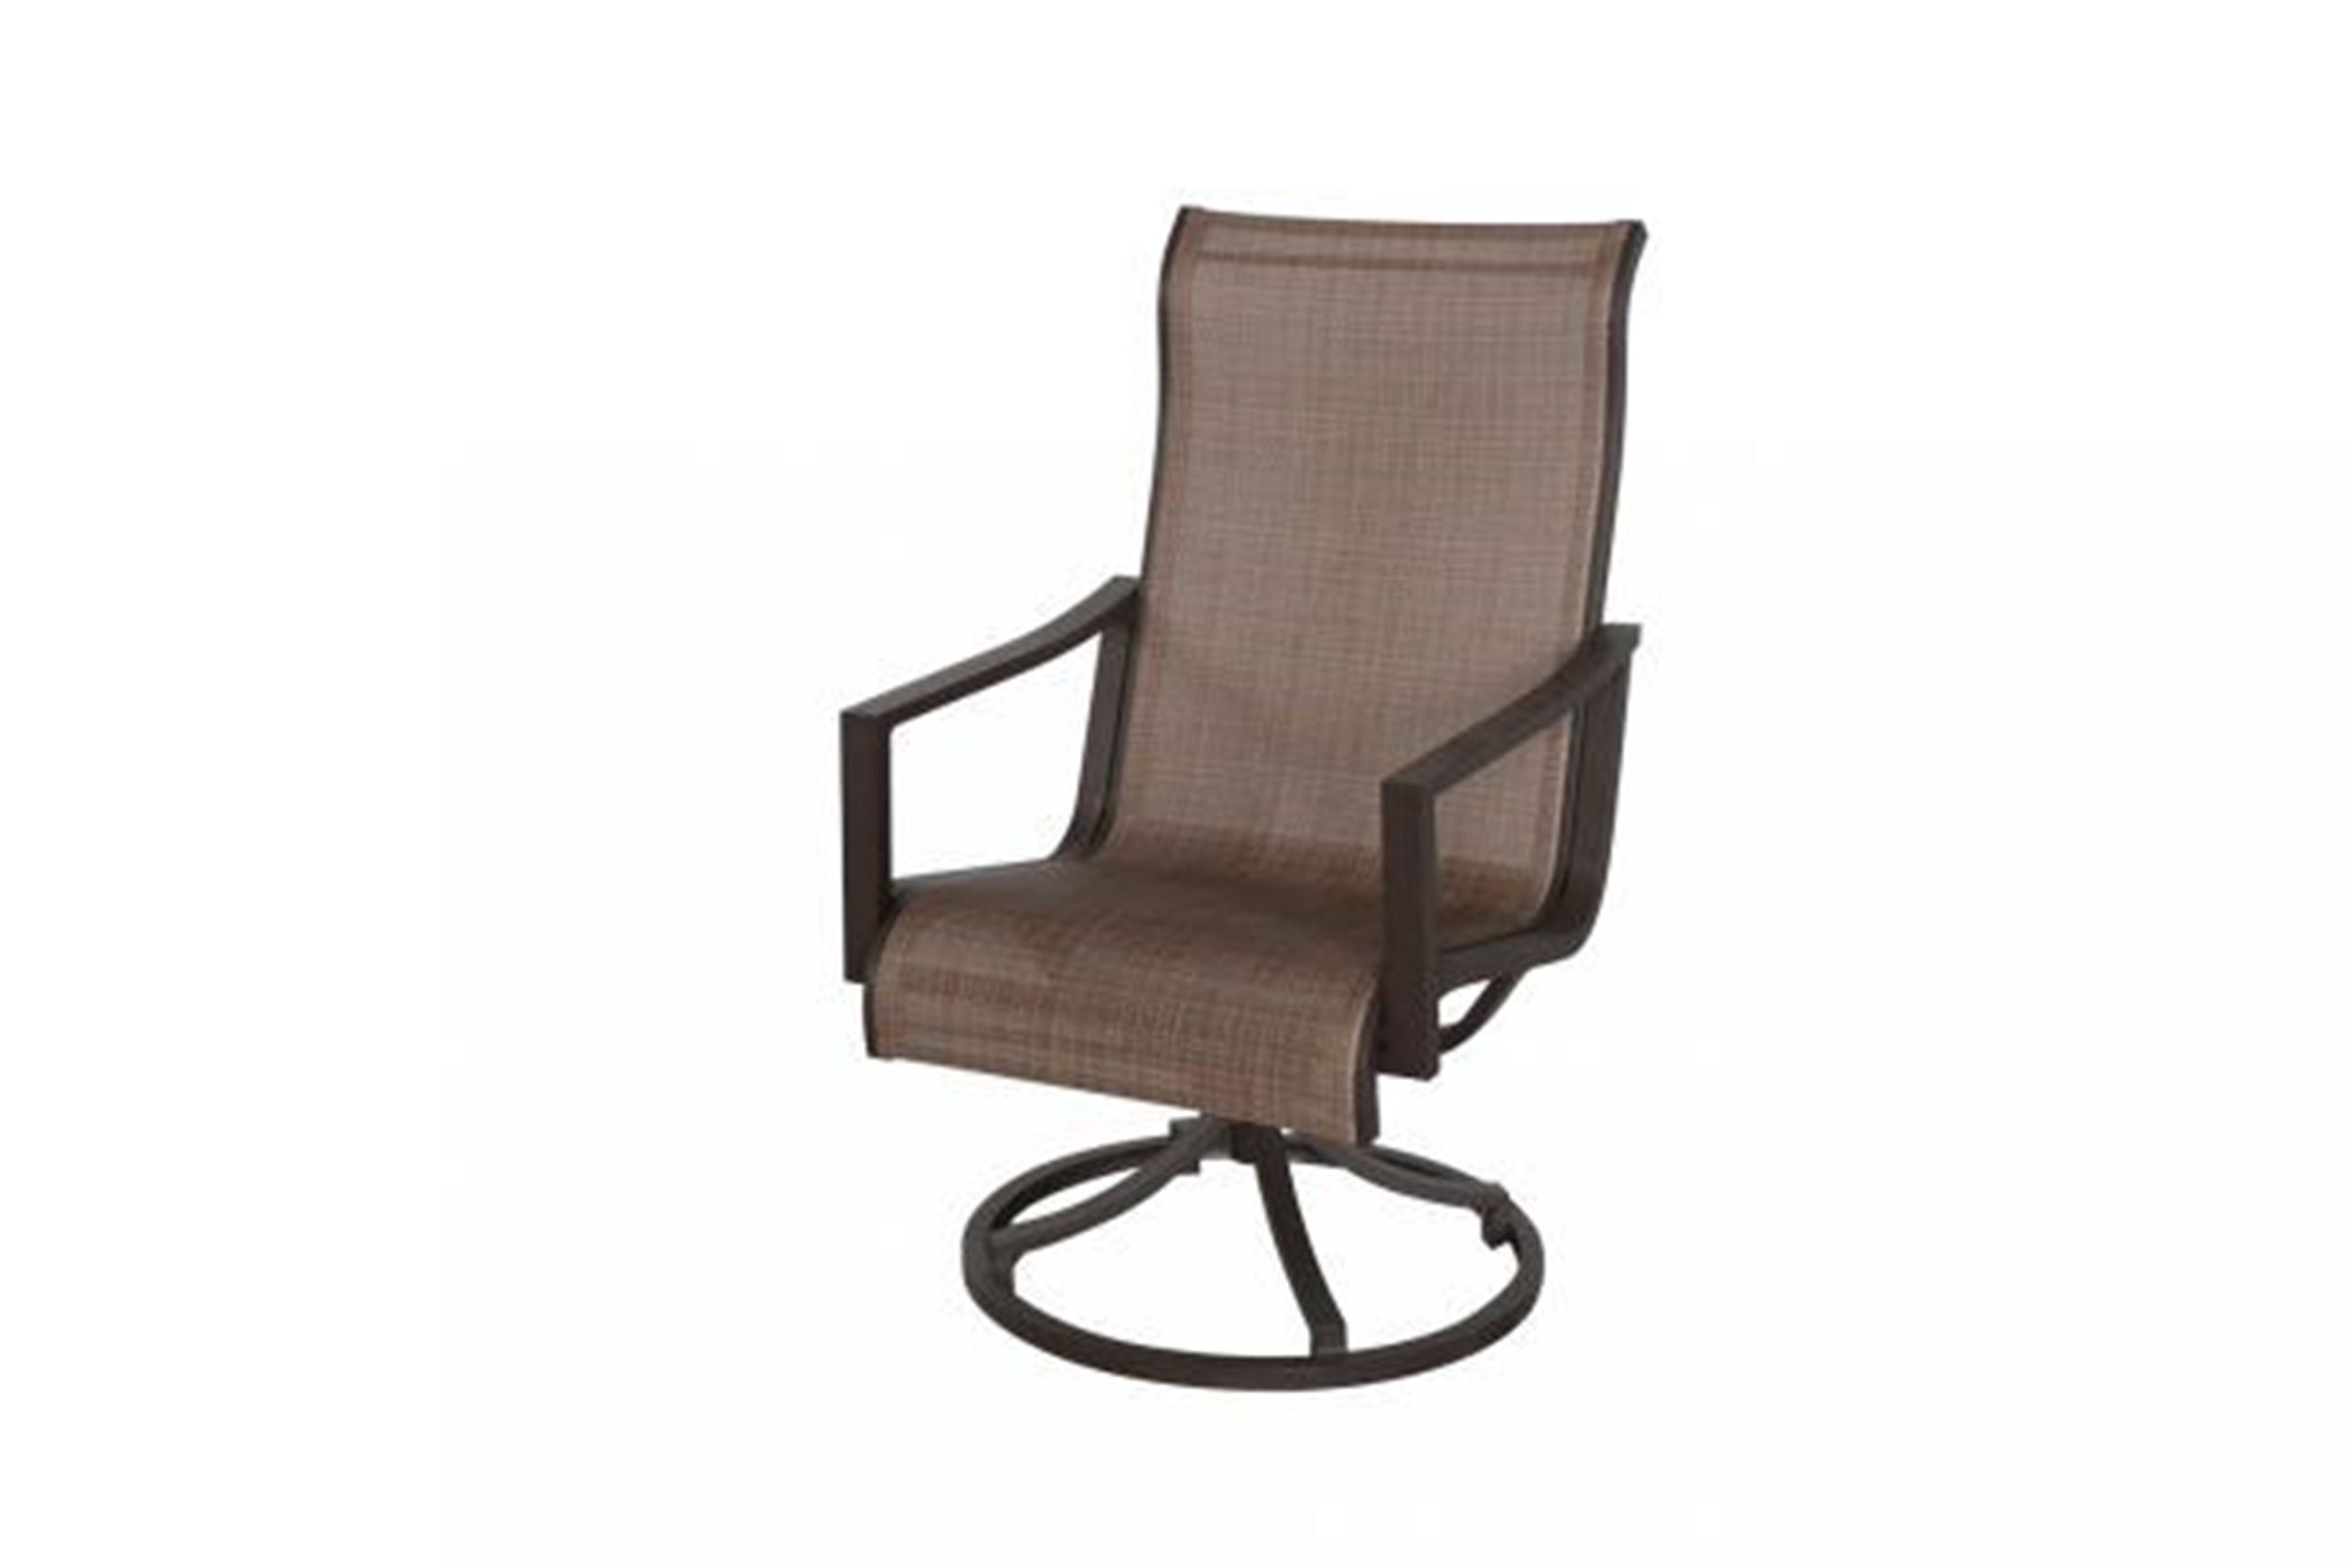 2nd Shade Patio Furniture | Minnesota's Largest Patio Furniture With Regard To Patio Sling Rocking Chairs (View 9 of 15)